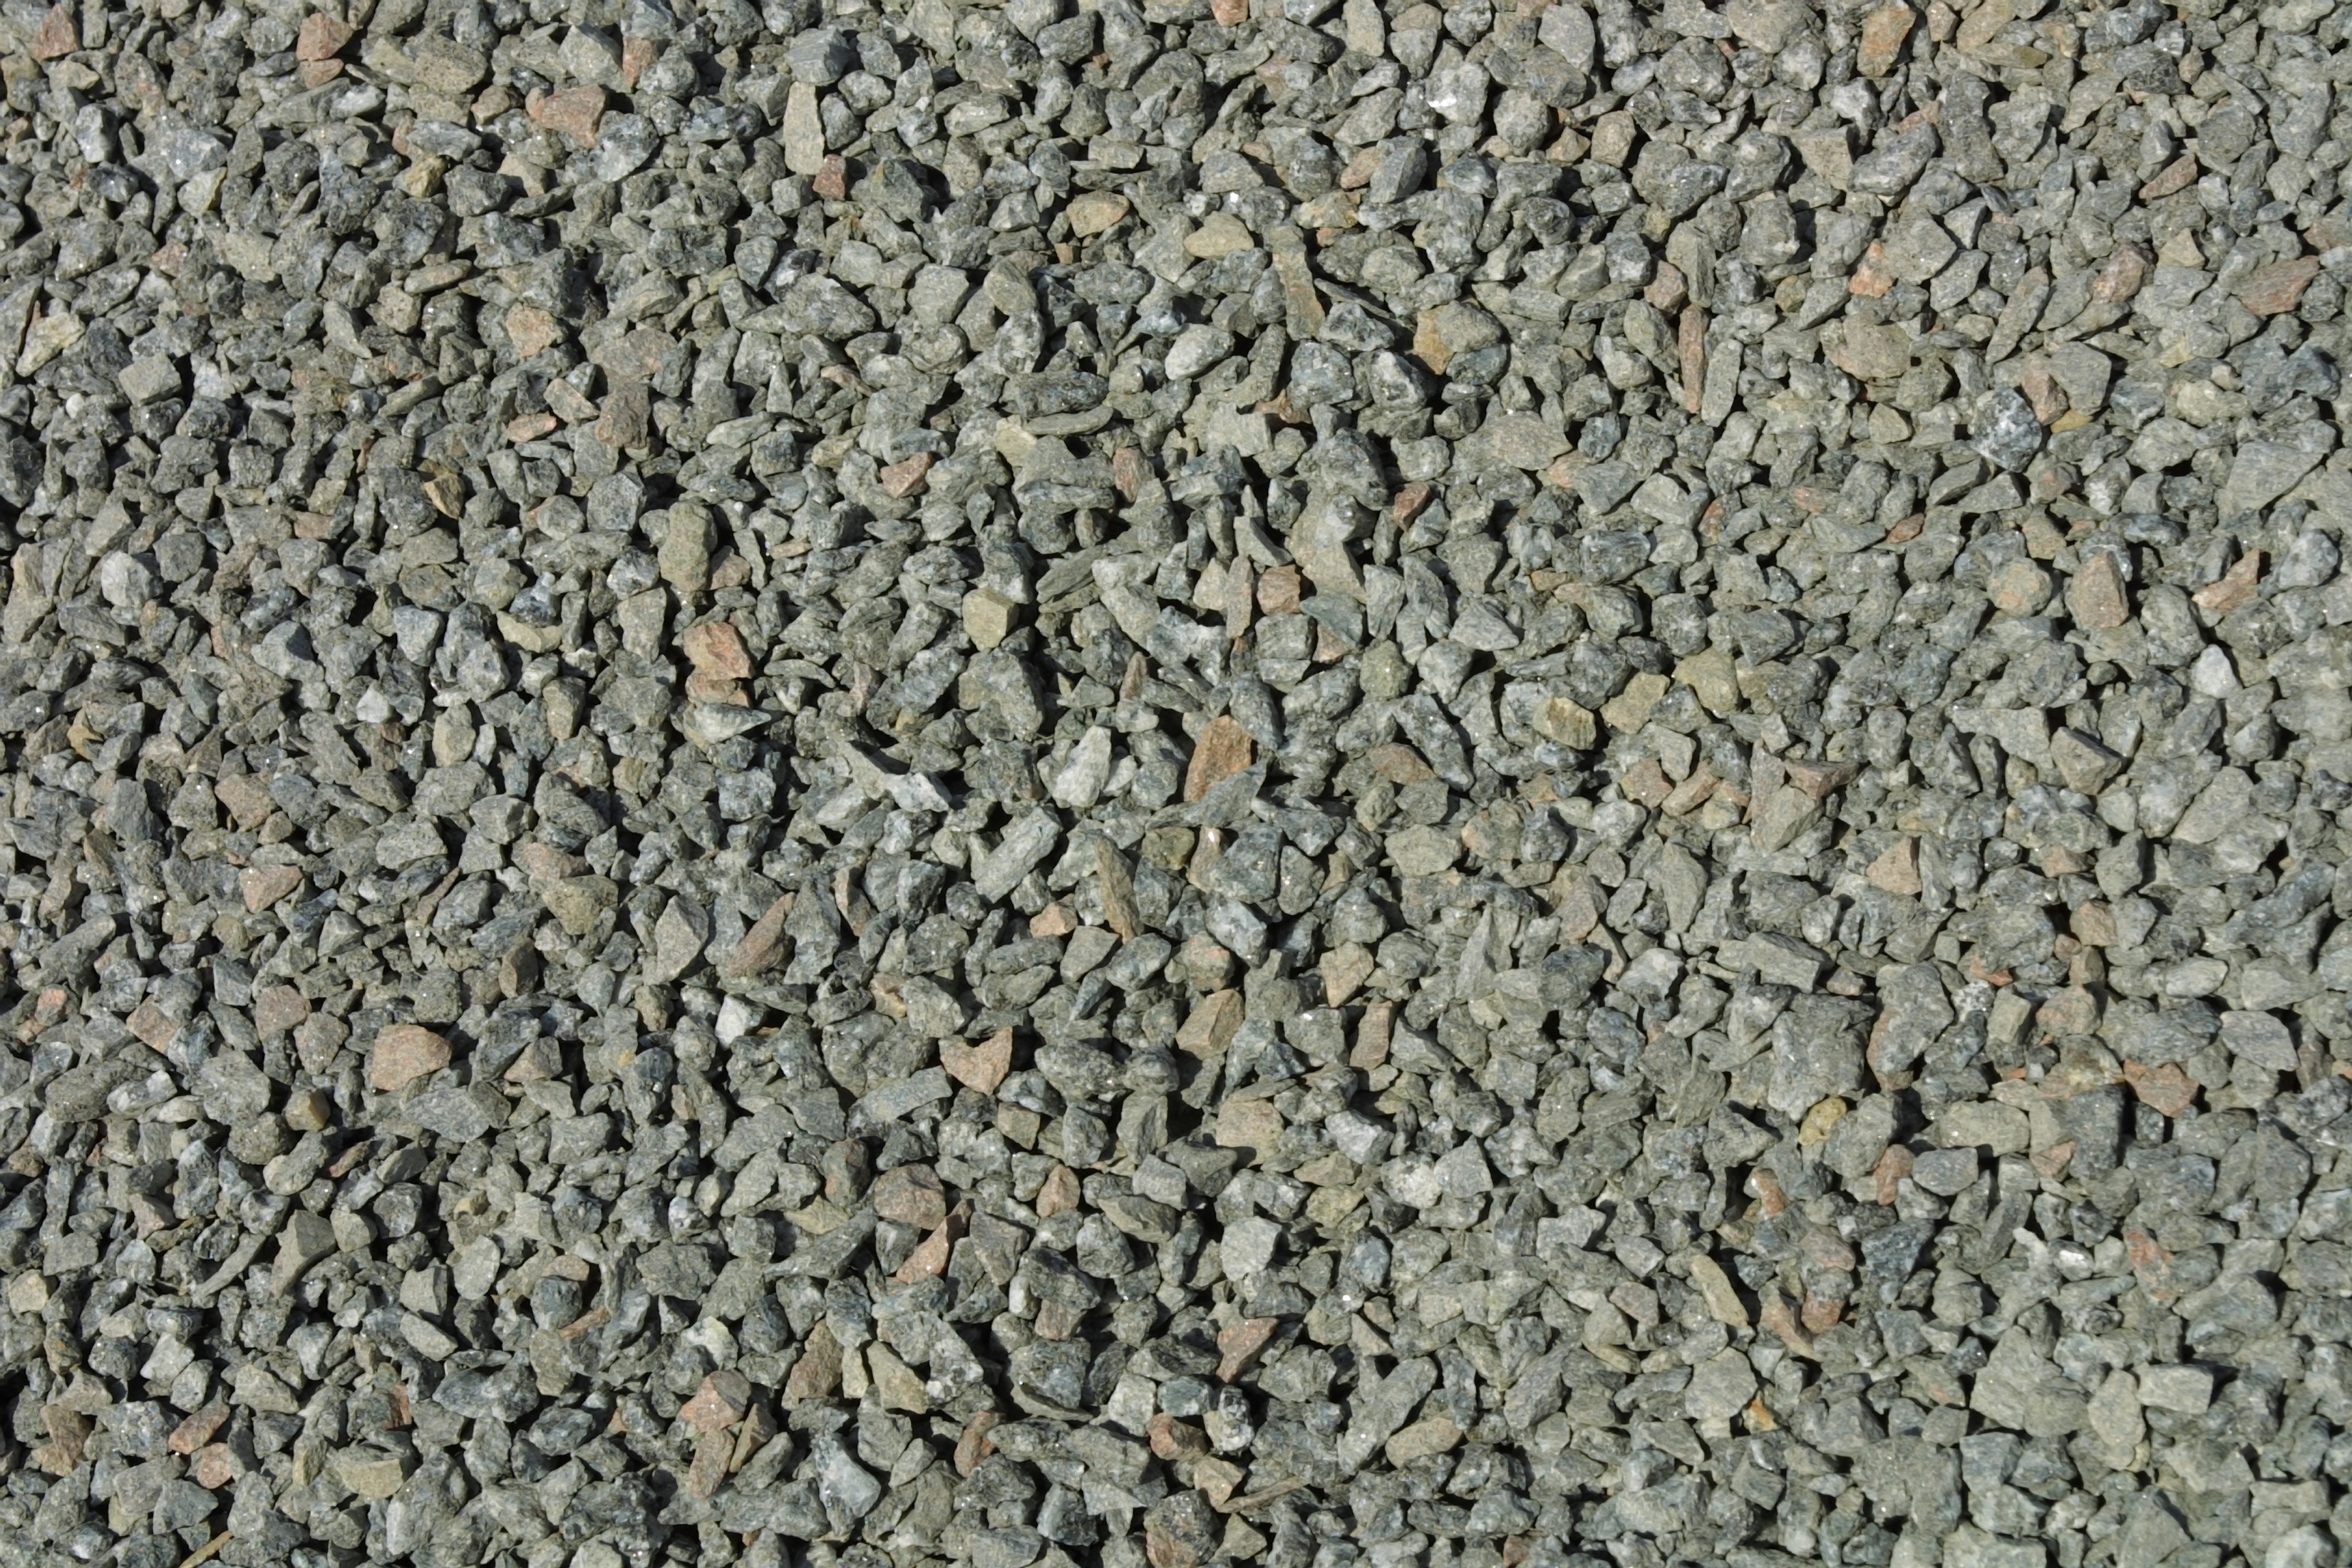 How to Calculate How Much Crushed Stone I Need | Home Guides